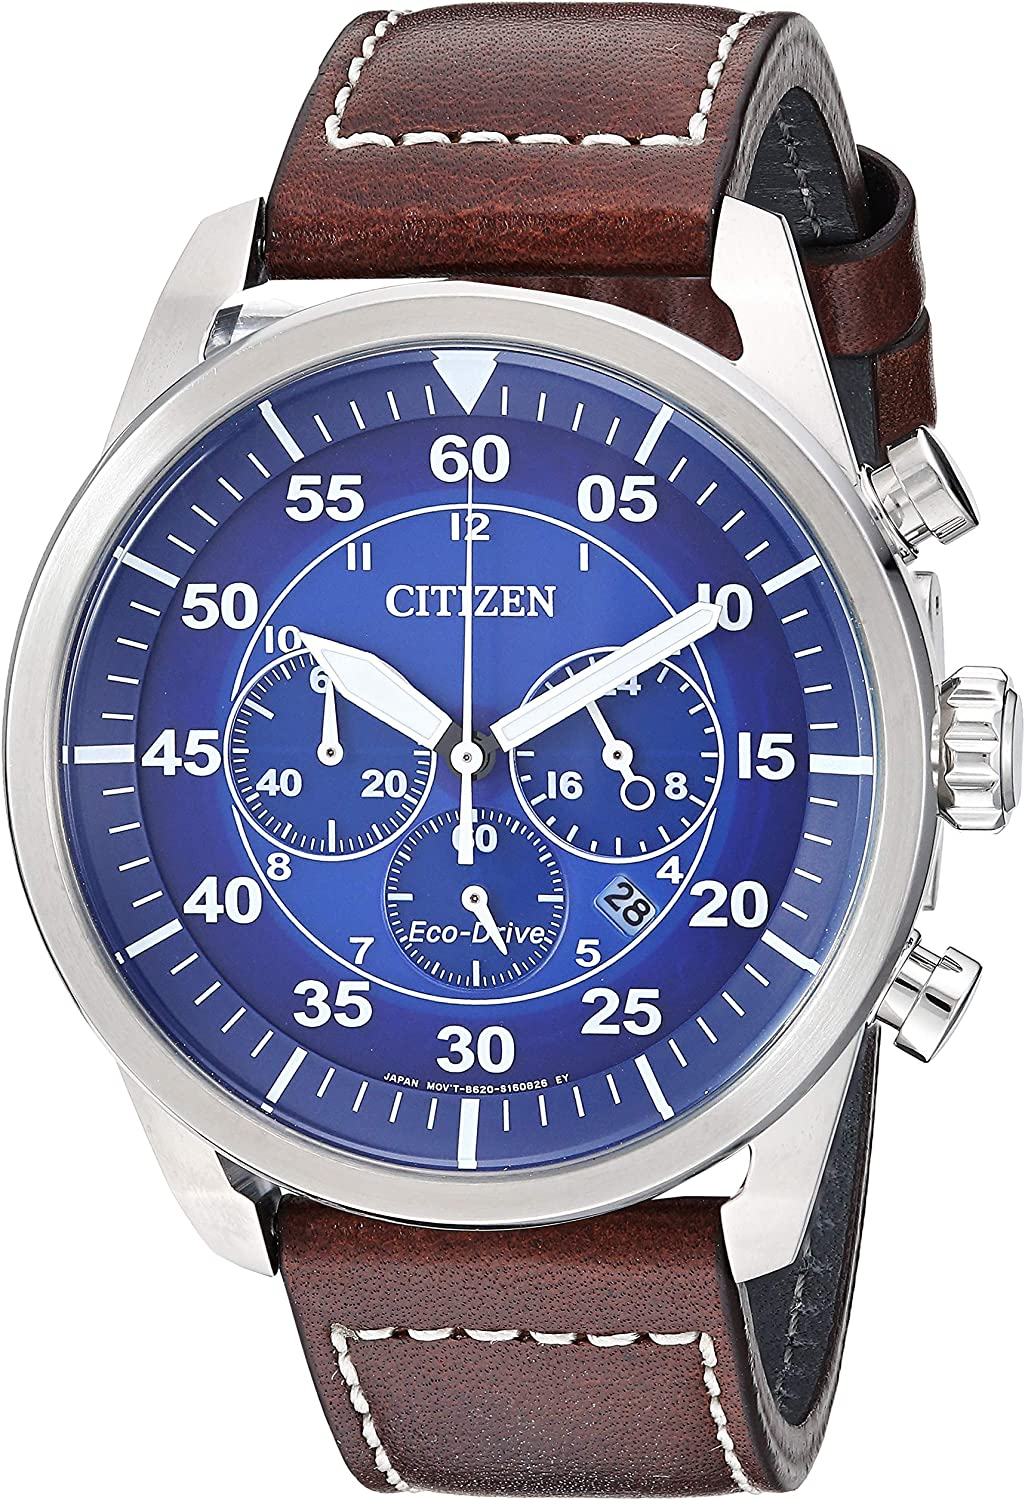 Citizen Men s Avion Stainless Steel Quartz Leather Calfskin Strap, Brown, 21.7 Casual Watch Model CA4210-41M